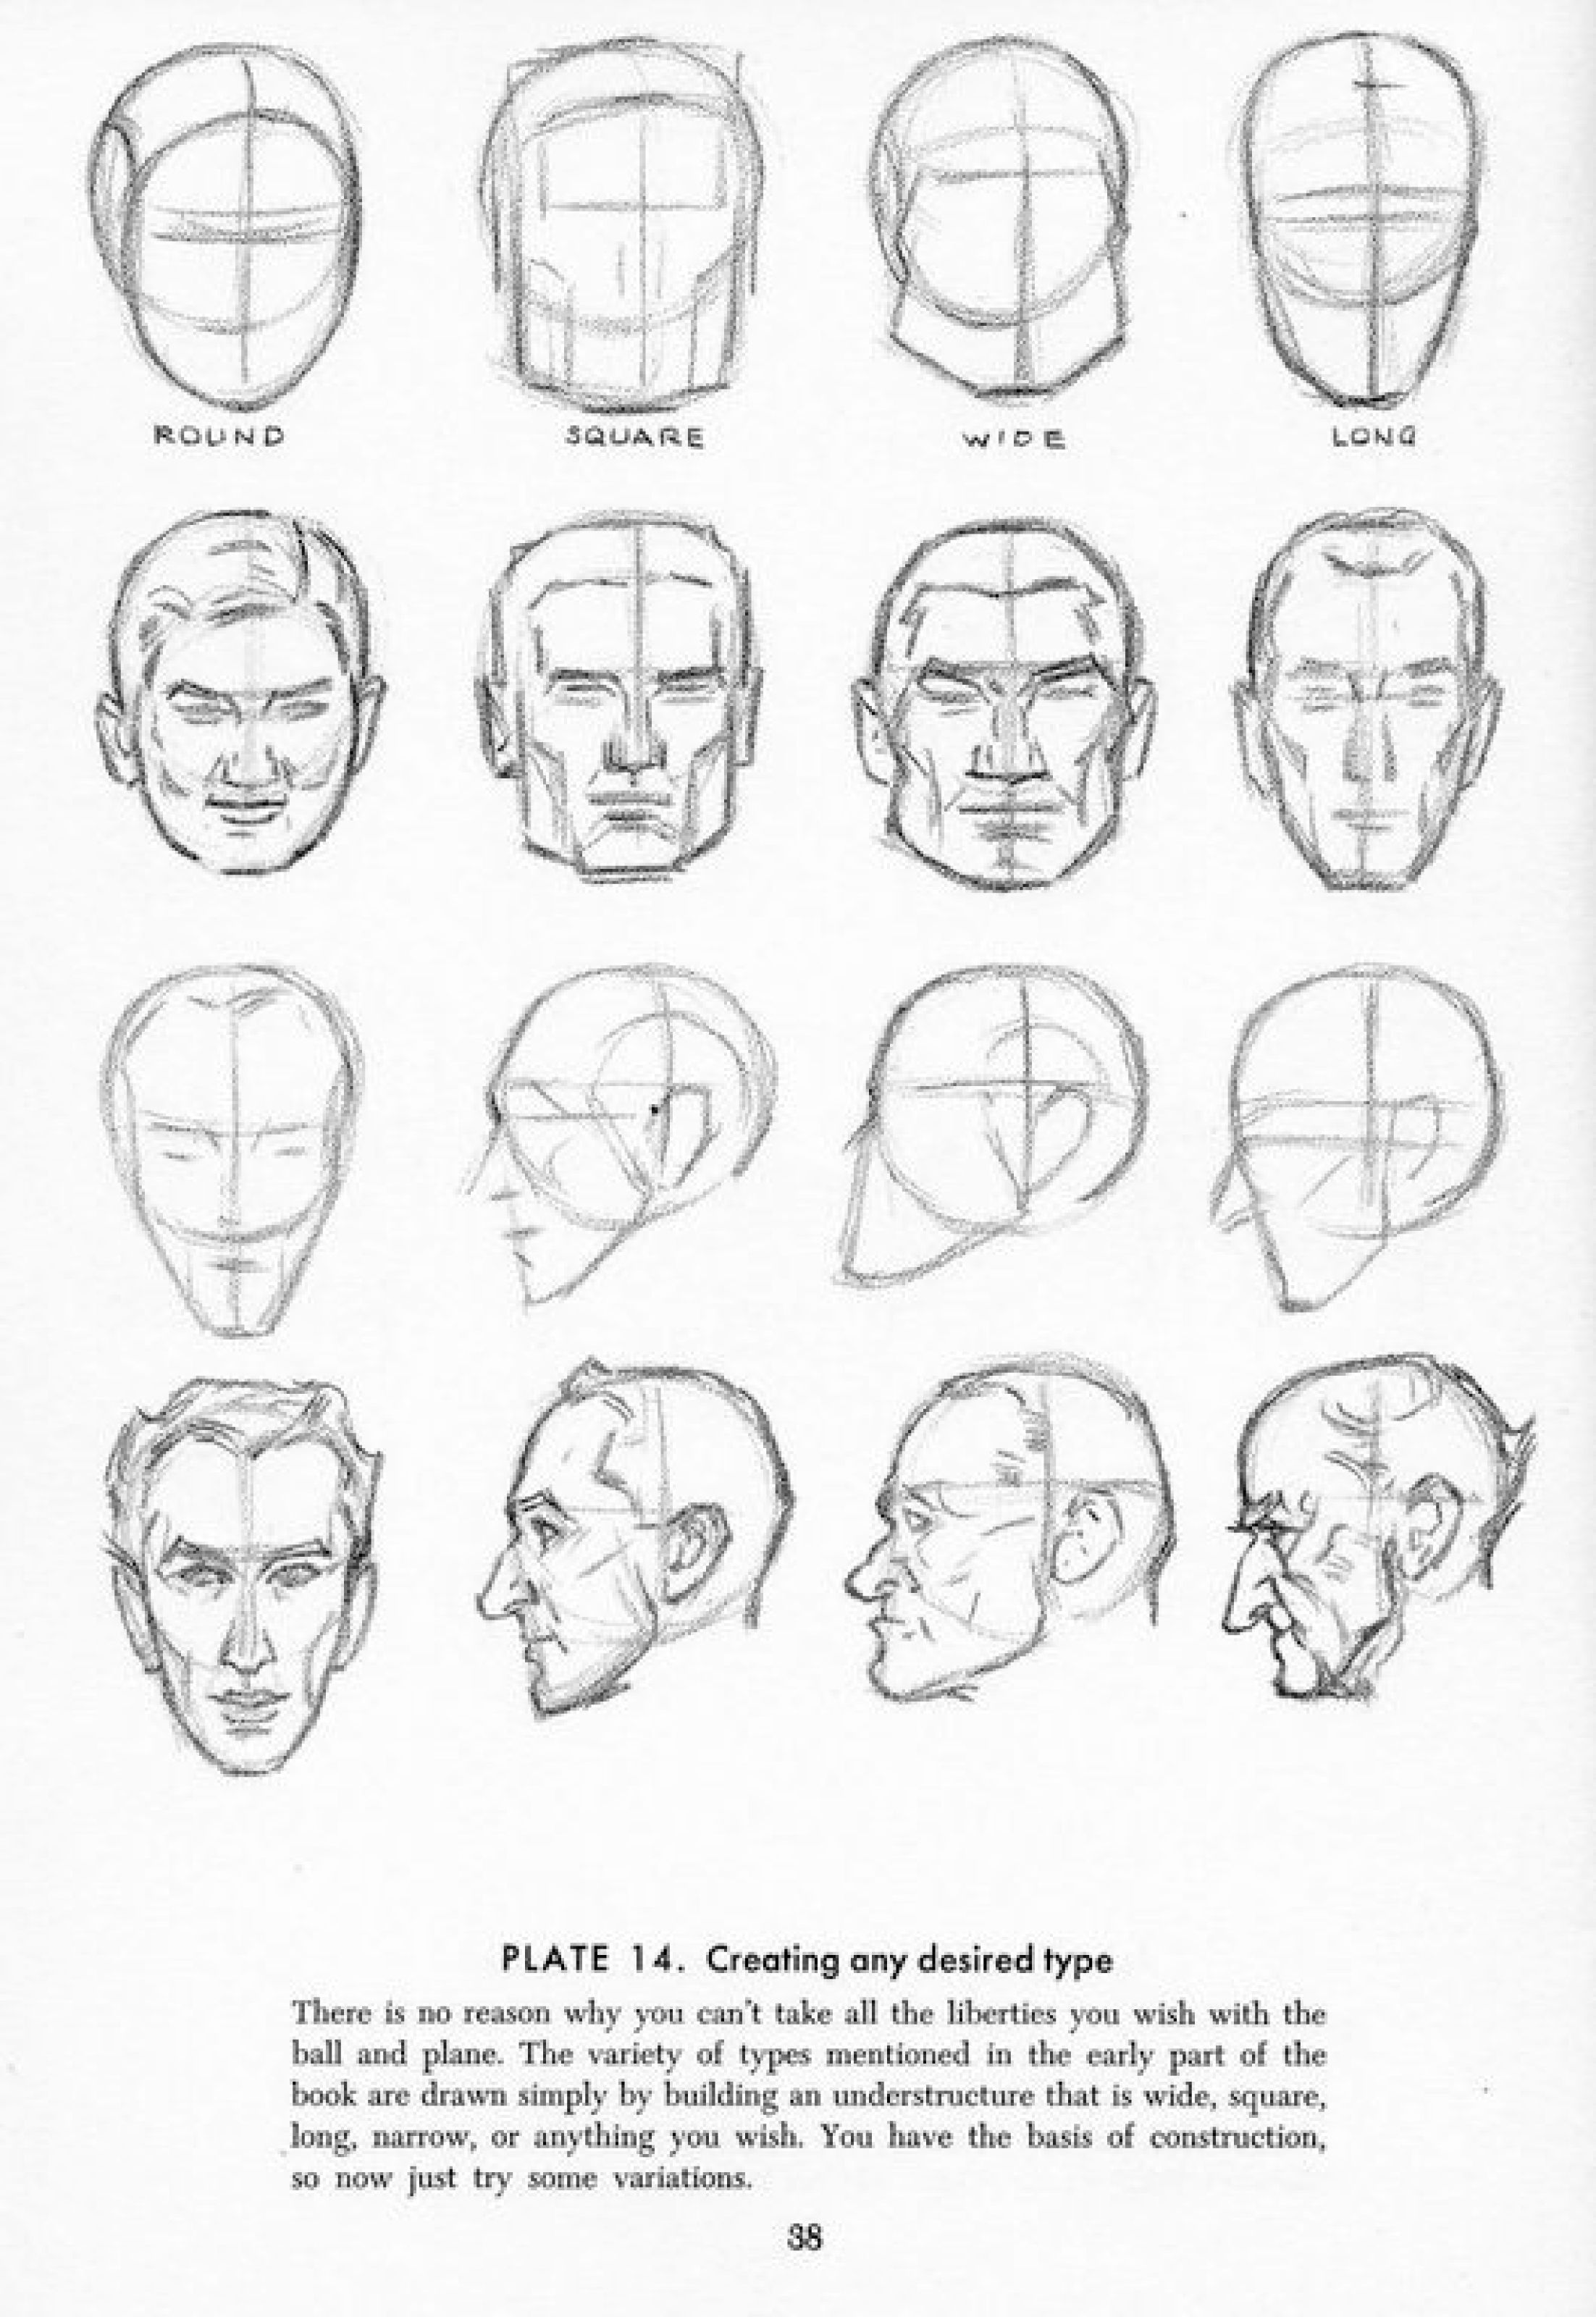 Http Illref Com Reference Illustrations Male Heads Highres